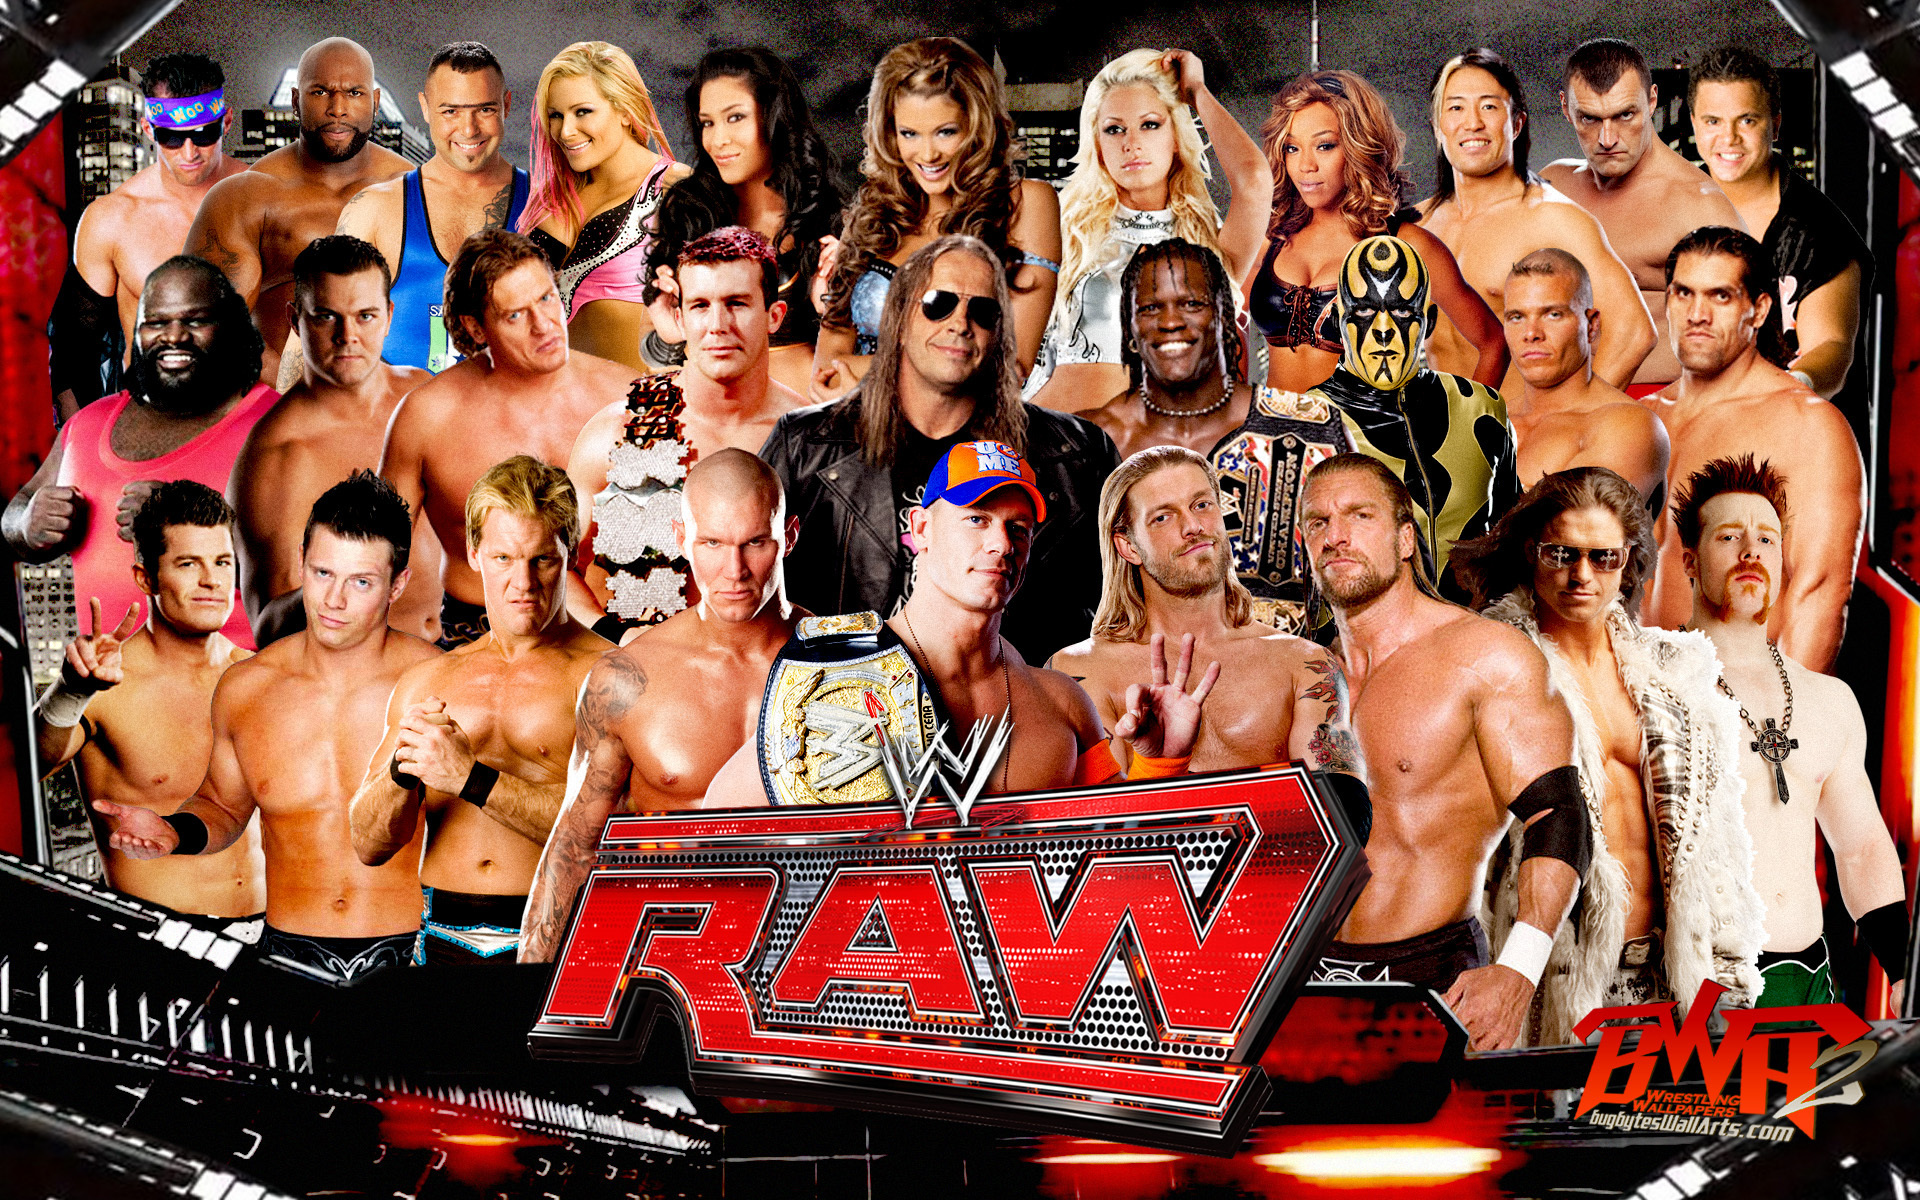 http://images4.fanpop.com/image/photos/16900000/WWE-Raw-wwe-16933714-1920-1200.jpg